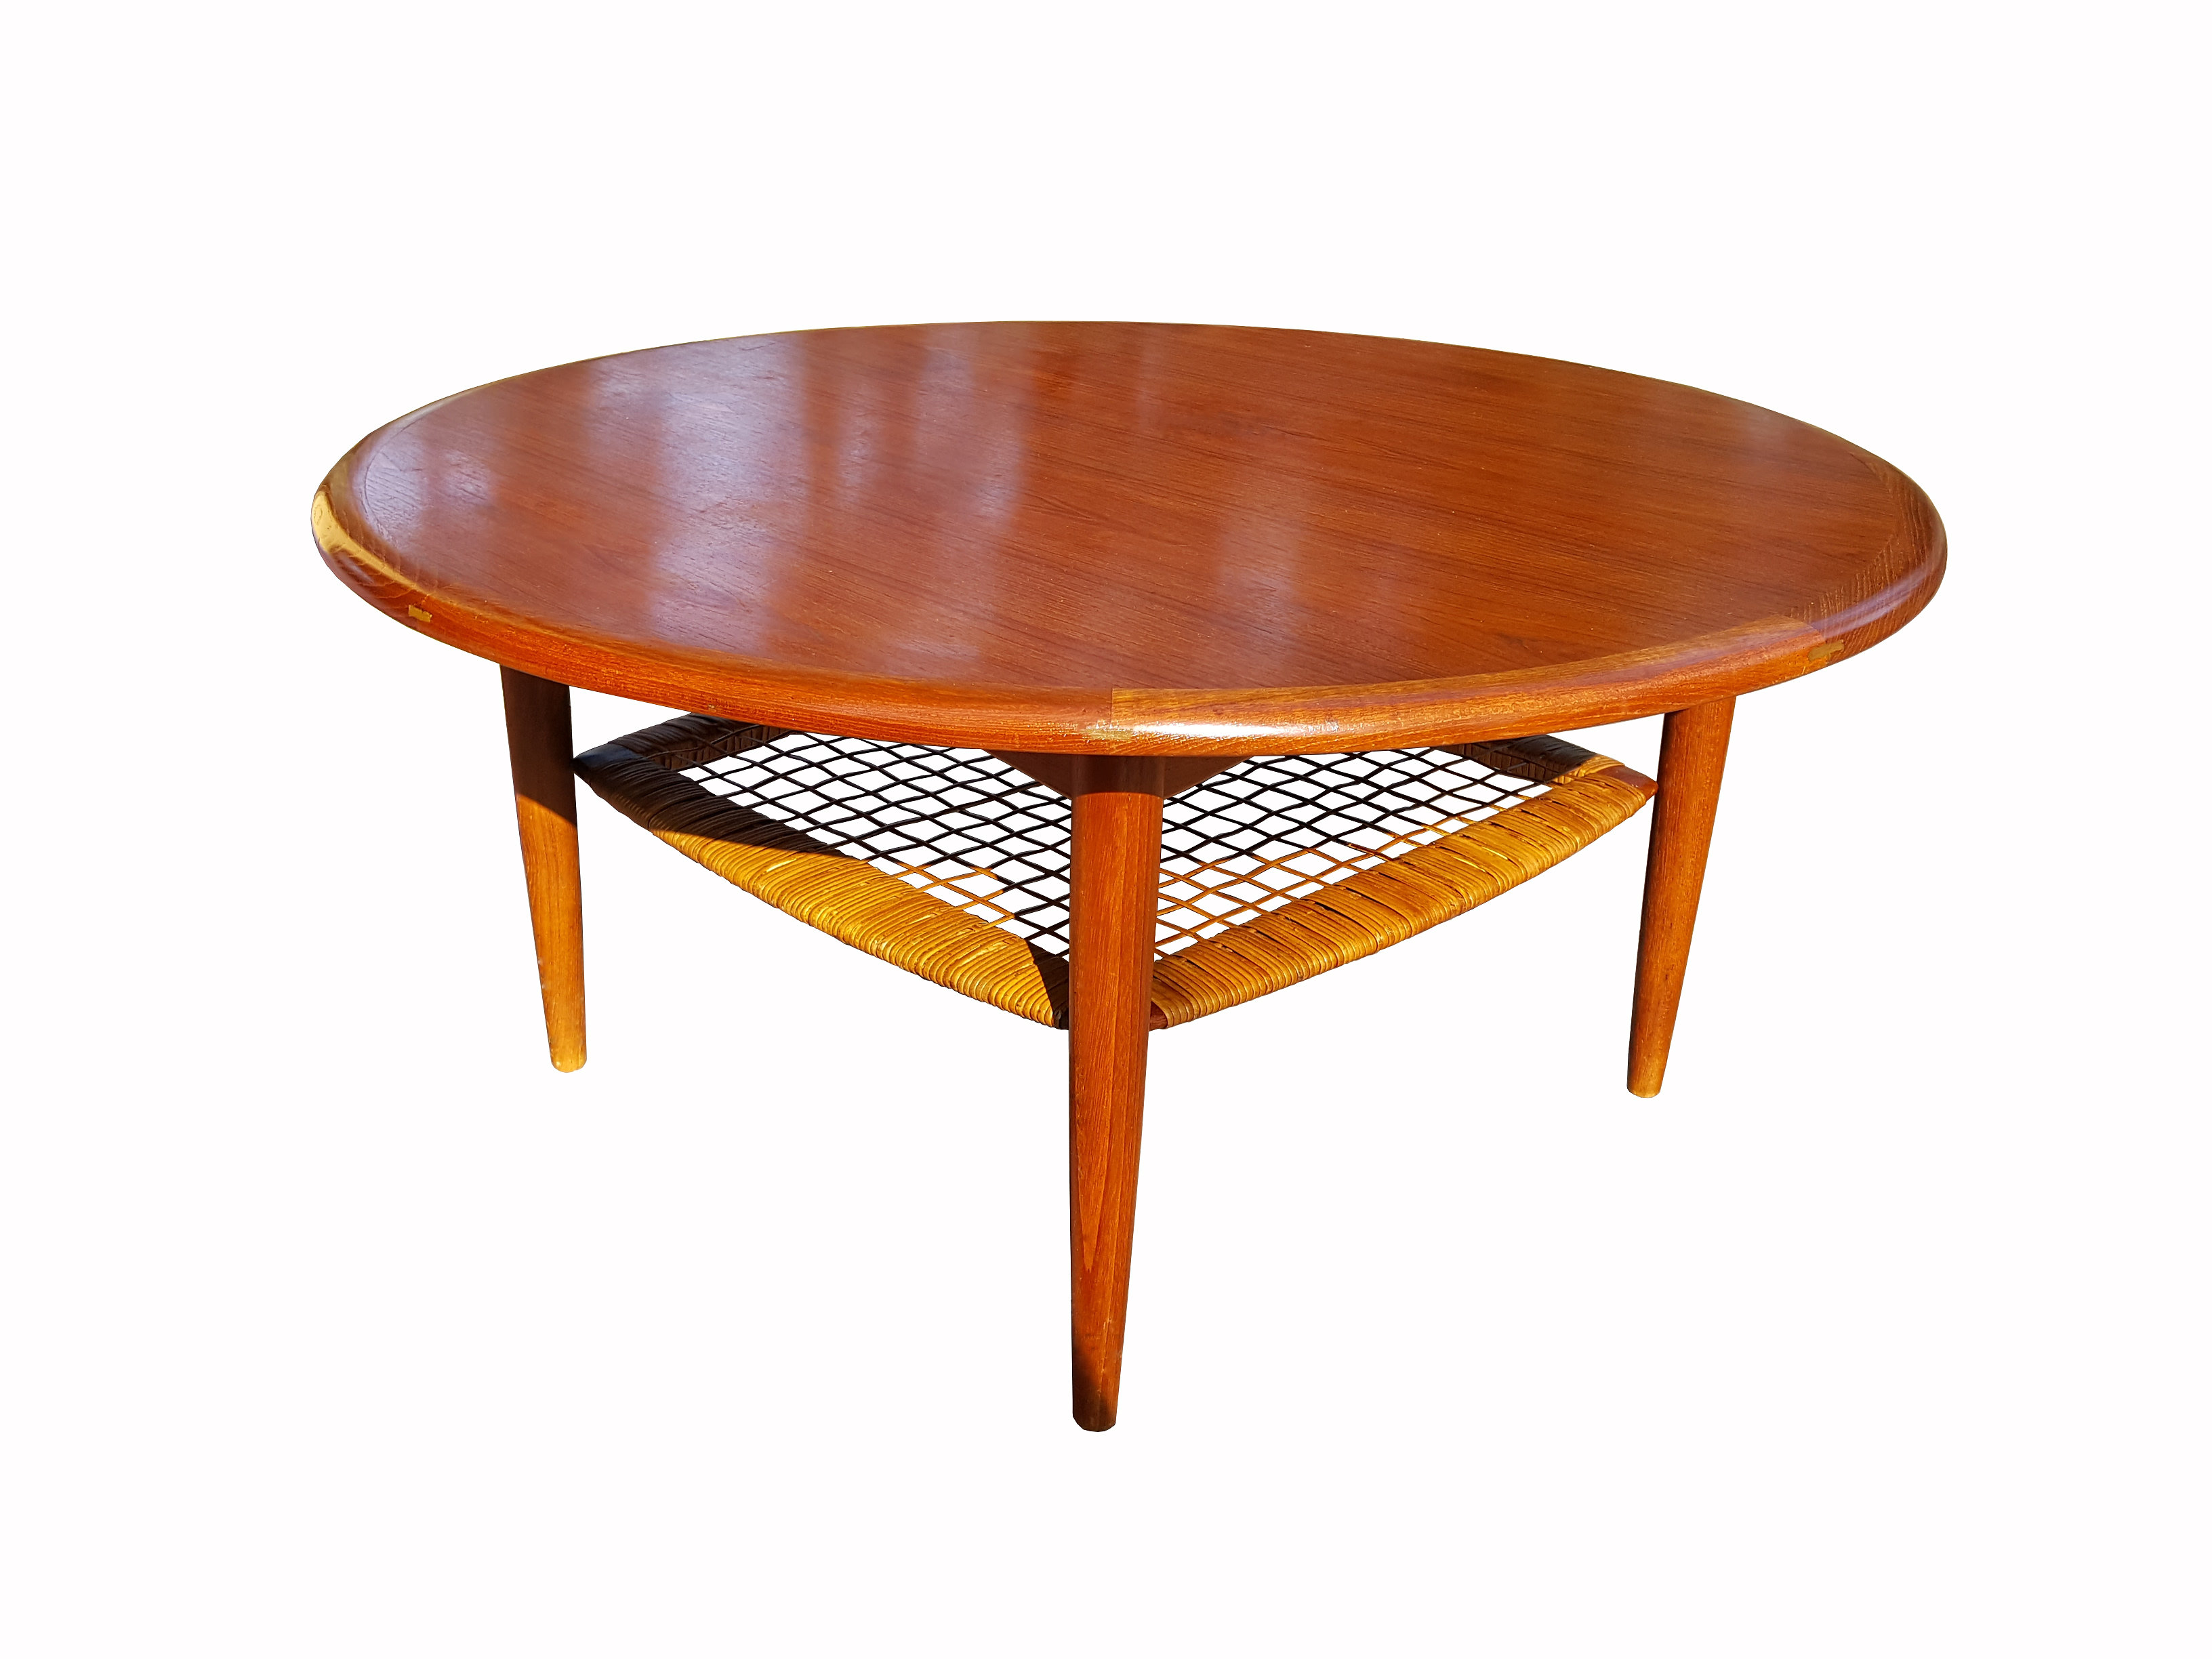 bagatelle gallery Mid century modern furniture Austin Tx